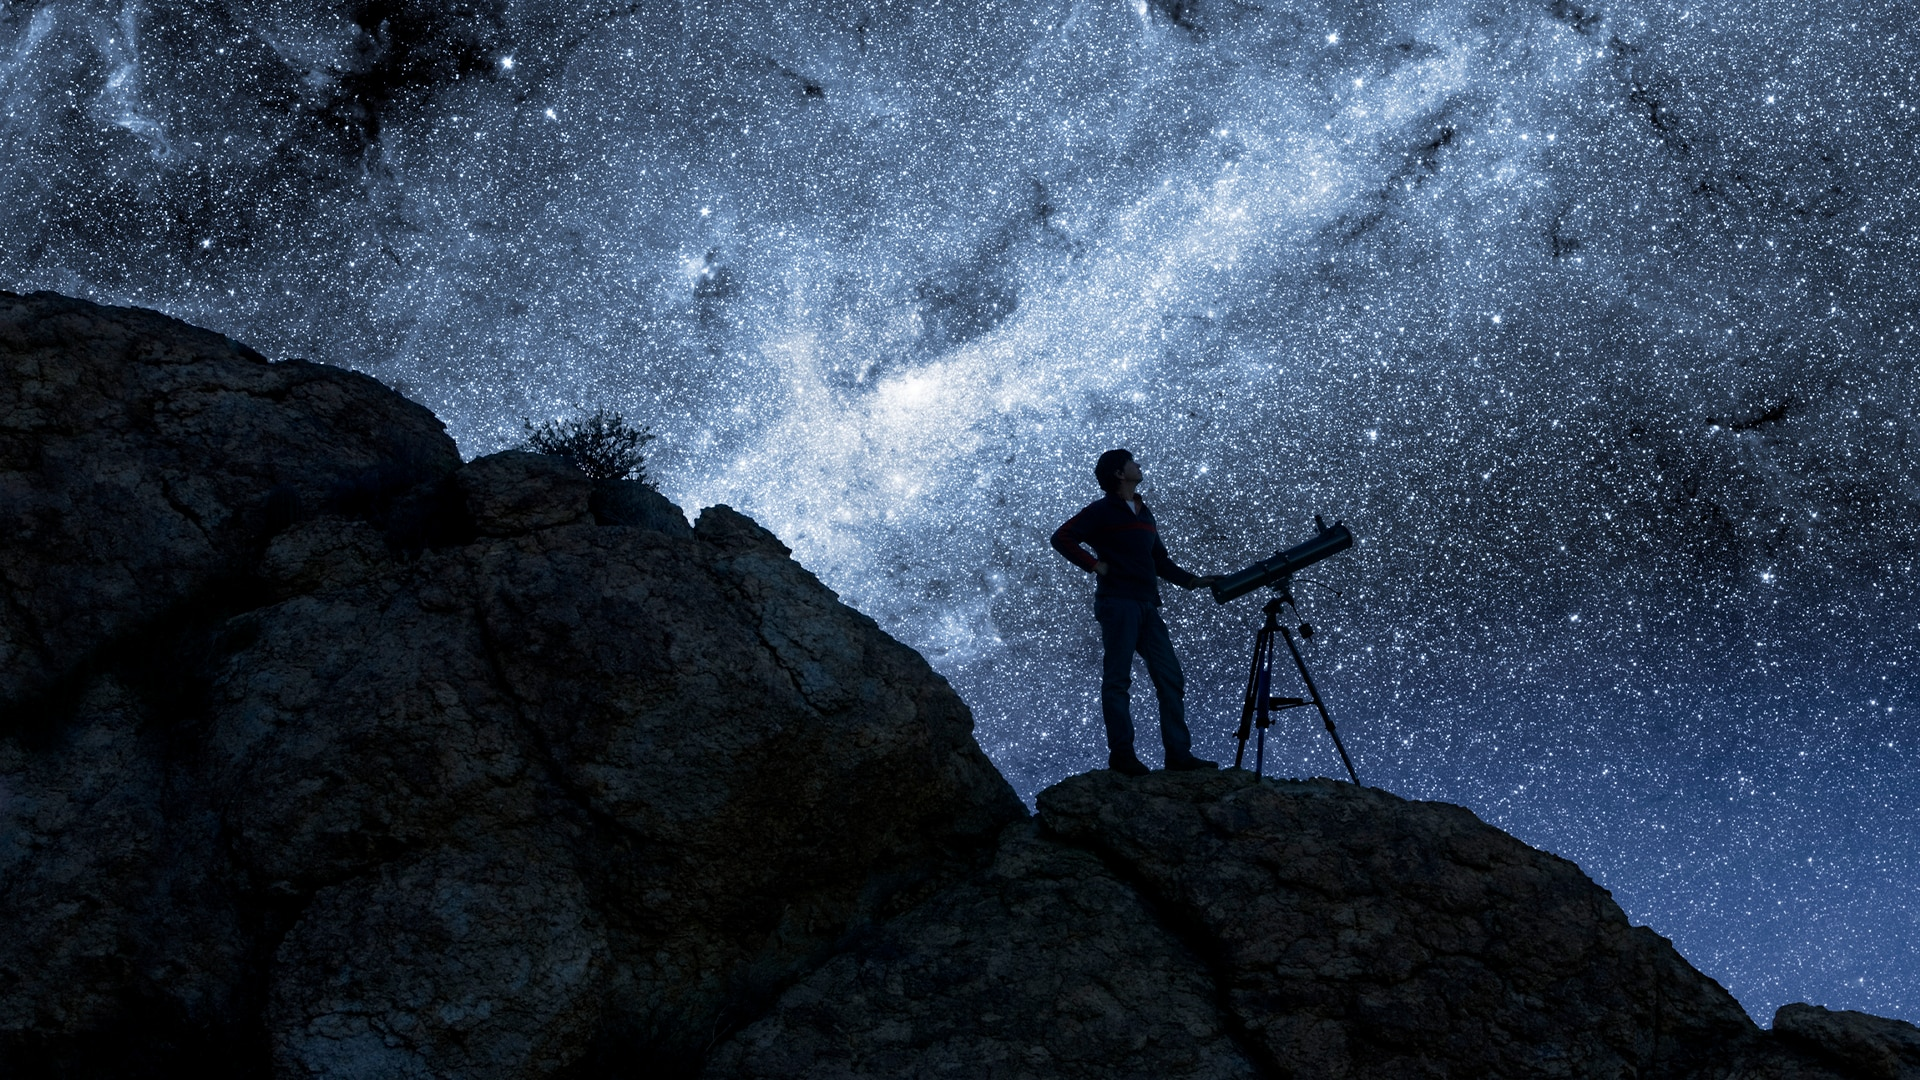 Person with telescope looking up to star filled night sky